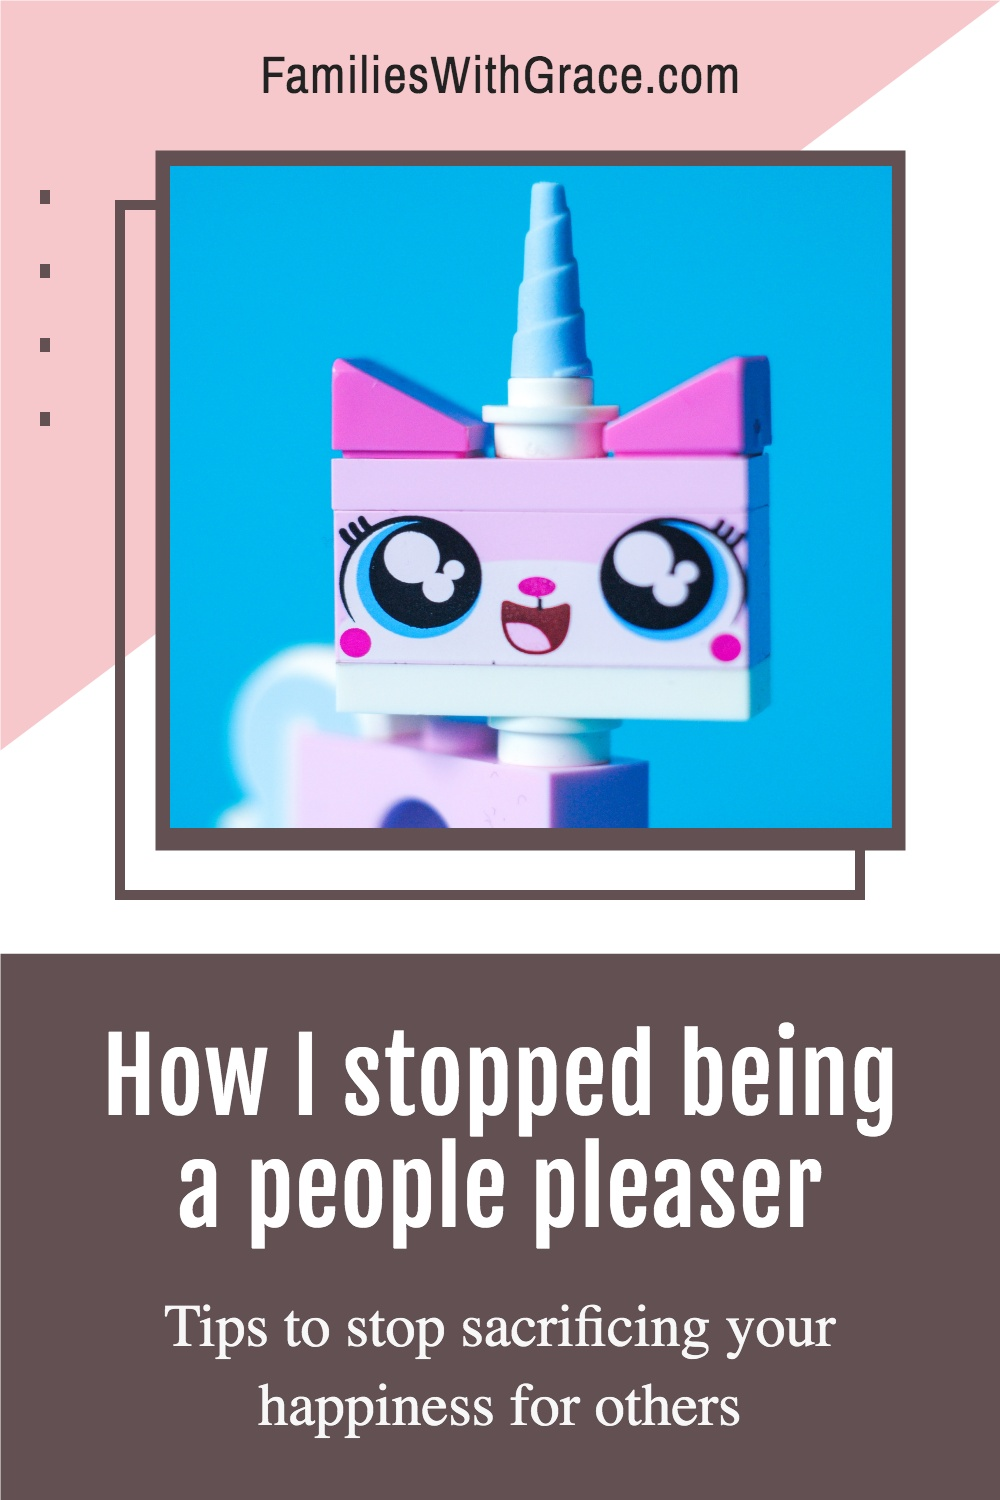 How I stopped being a people pleaser